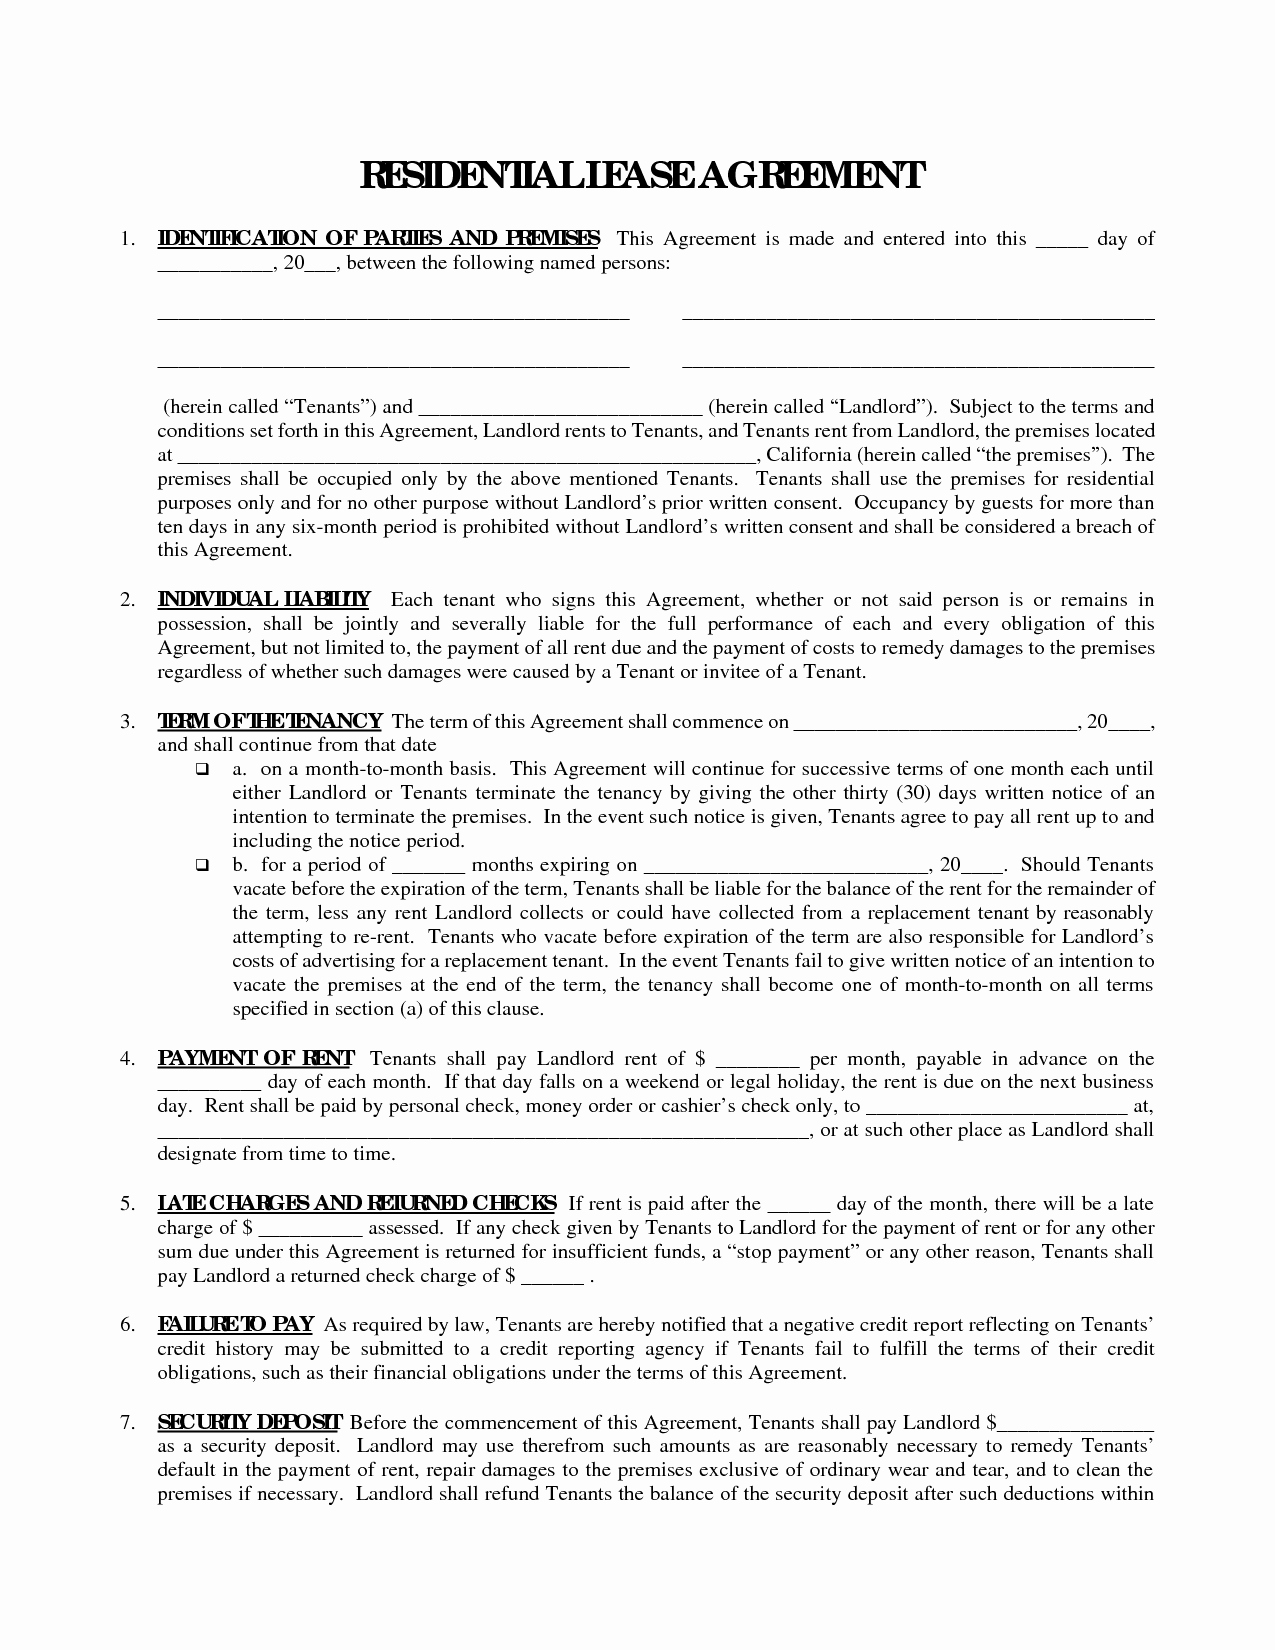 Printable Residential Free House Lease Agreement